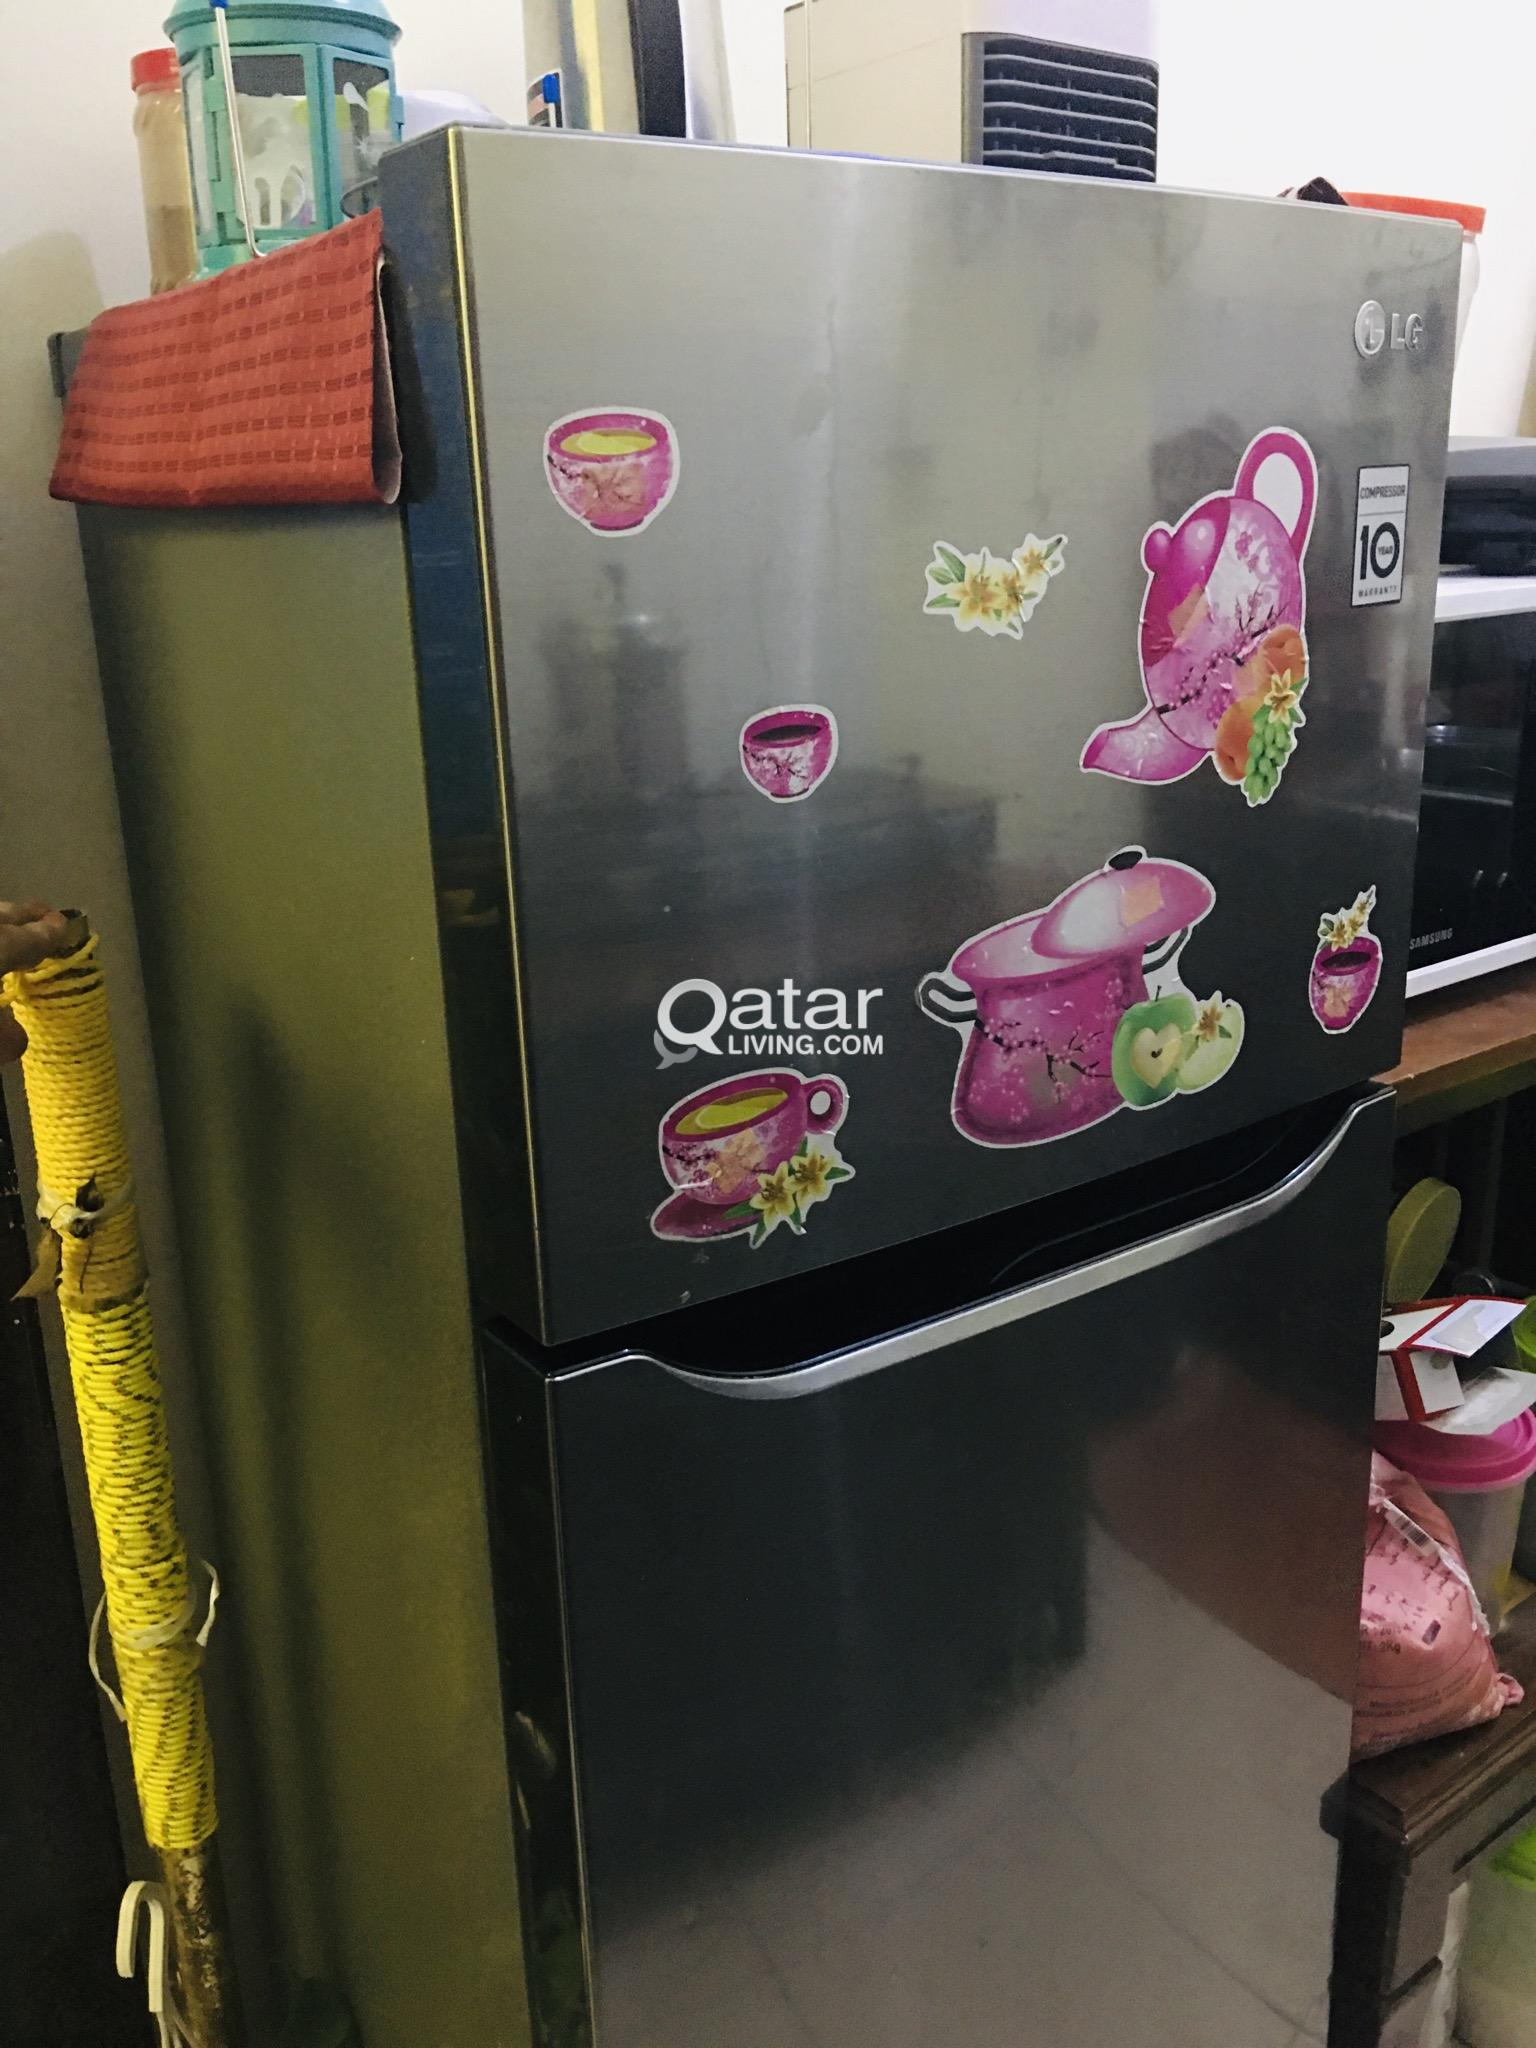 LG REFRIGERATOR FOR SALE (GOOD WORKING CONDITION)